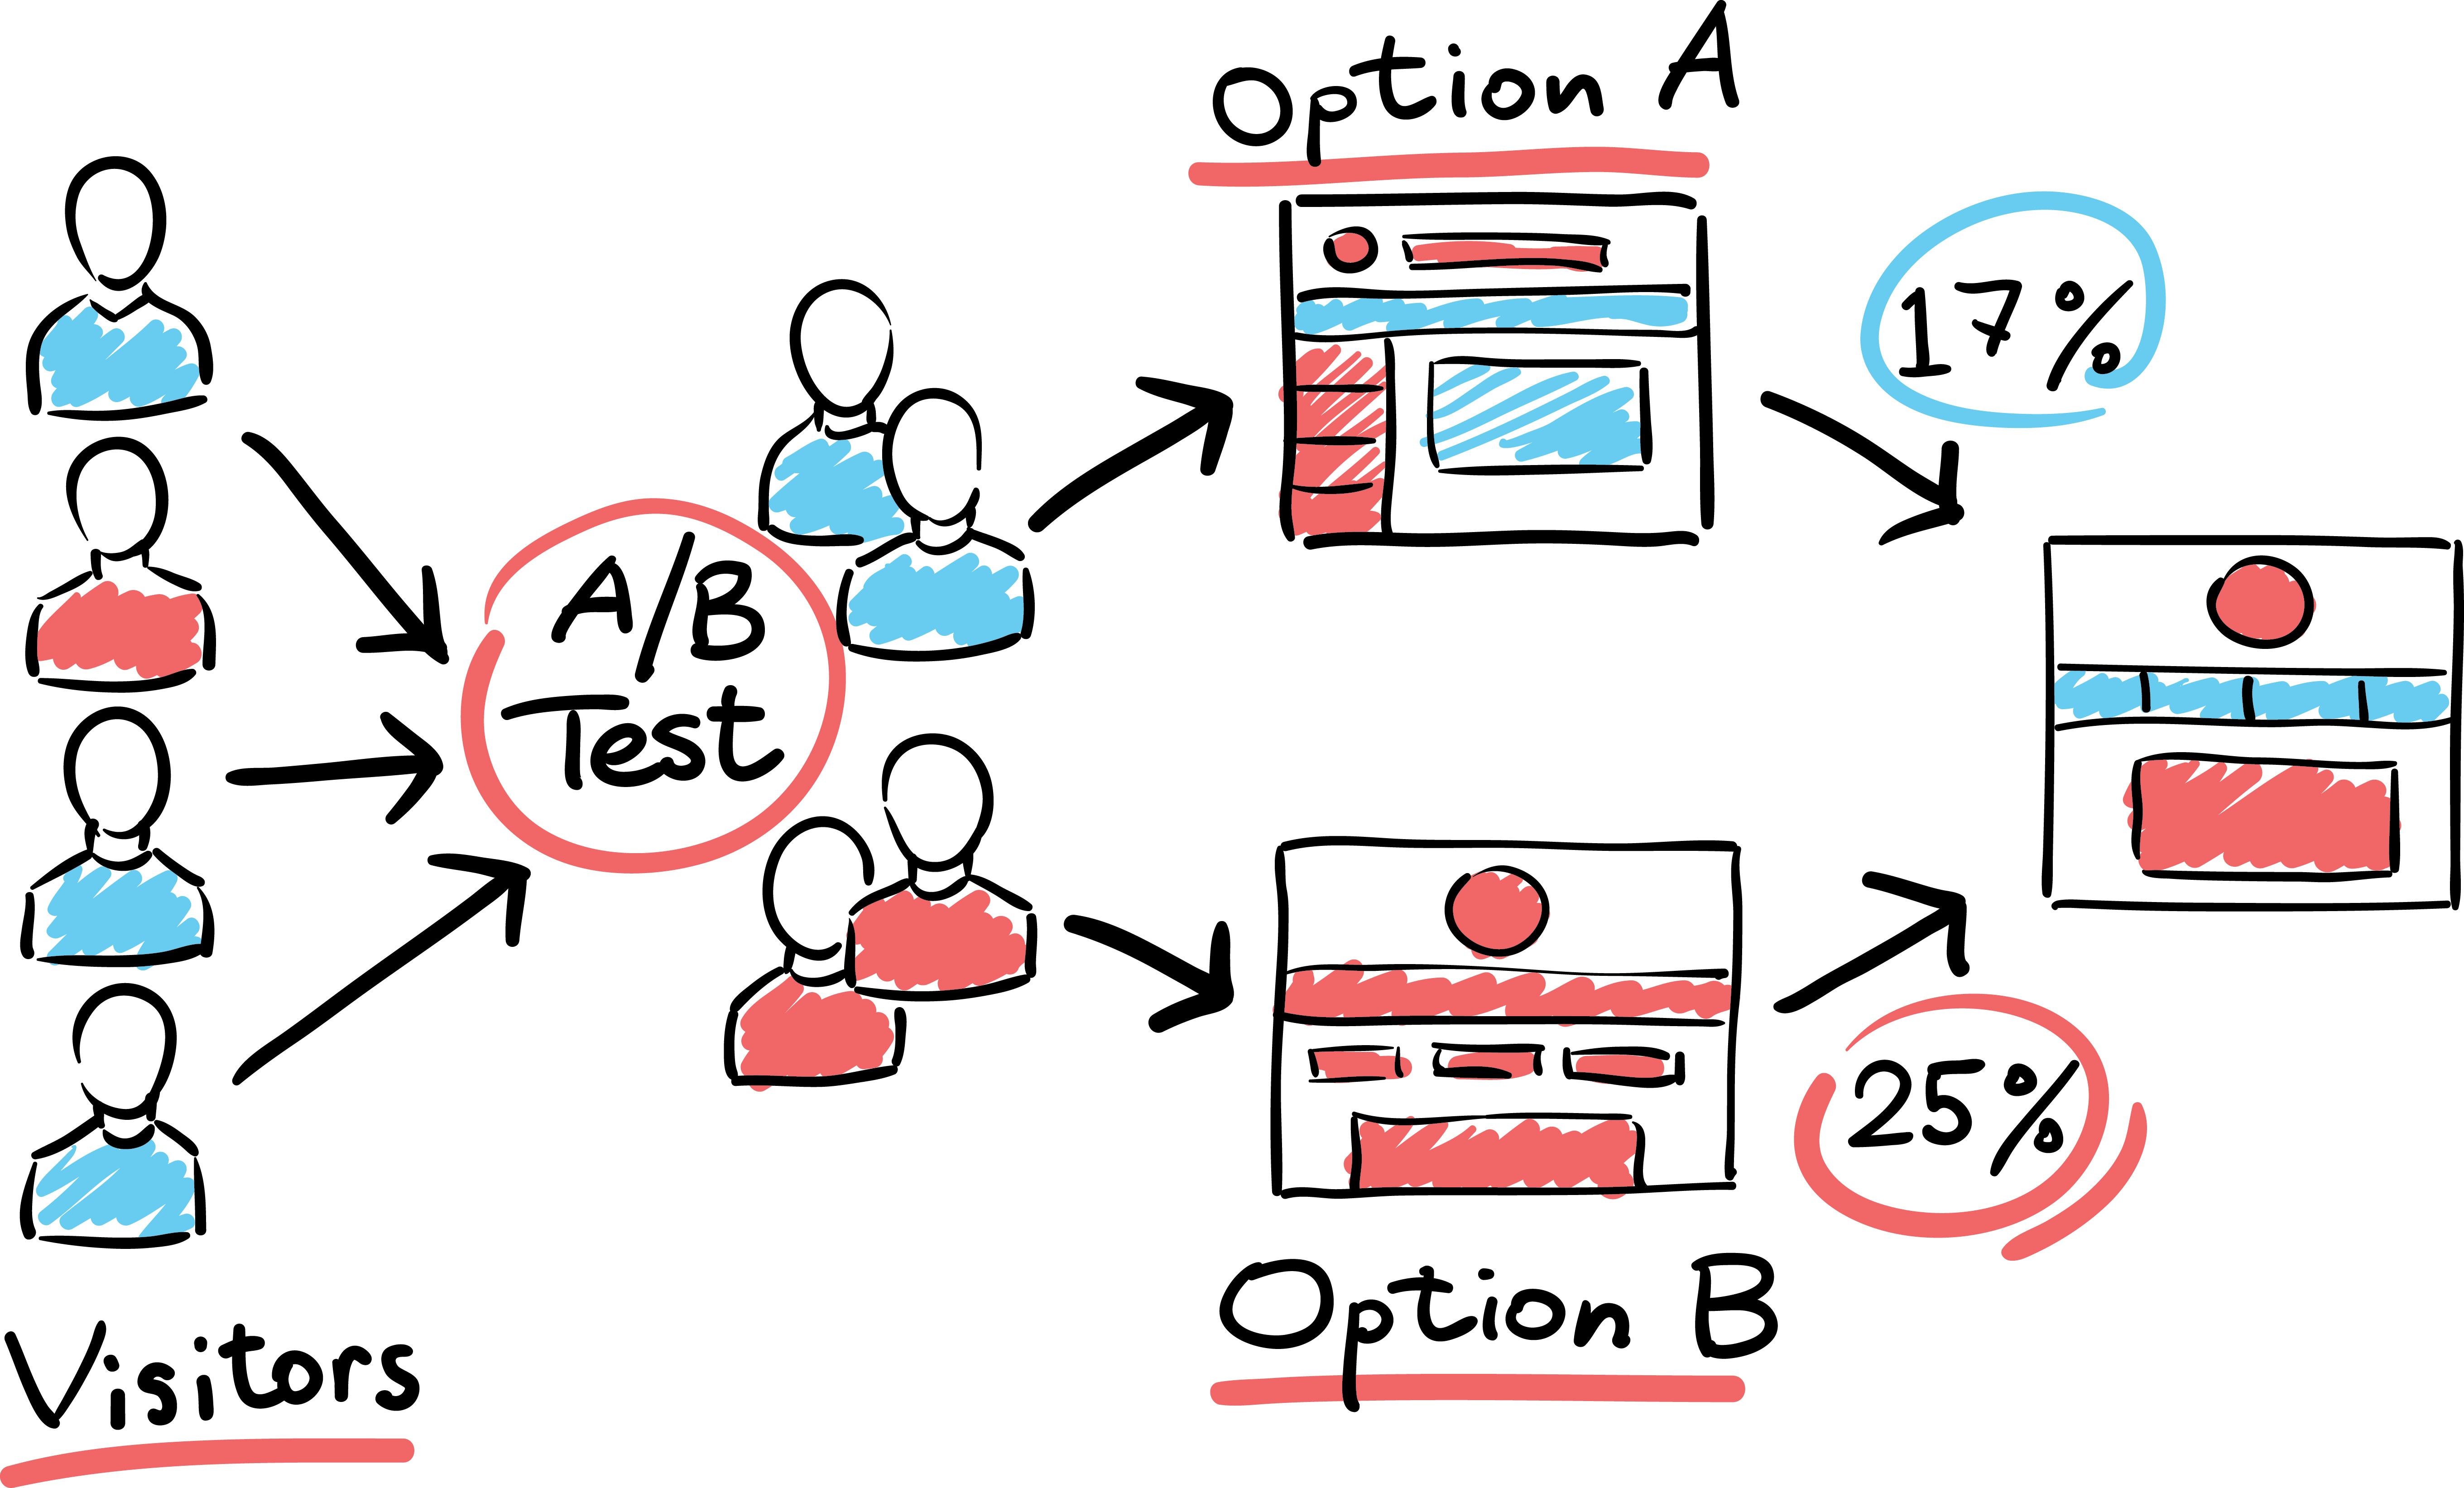 Experimenting before approving: the importance of testing